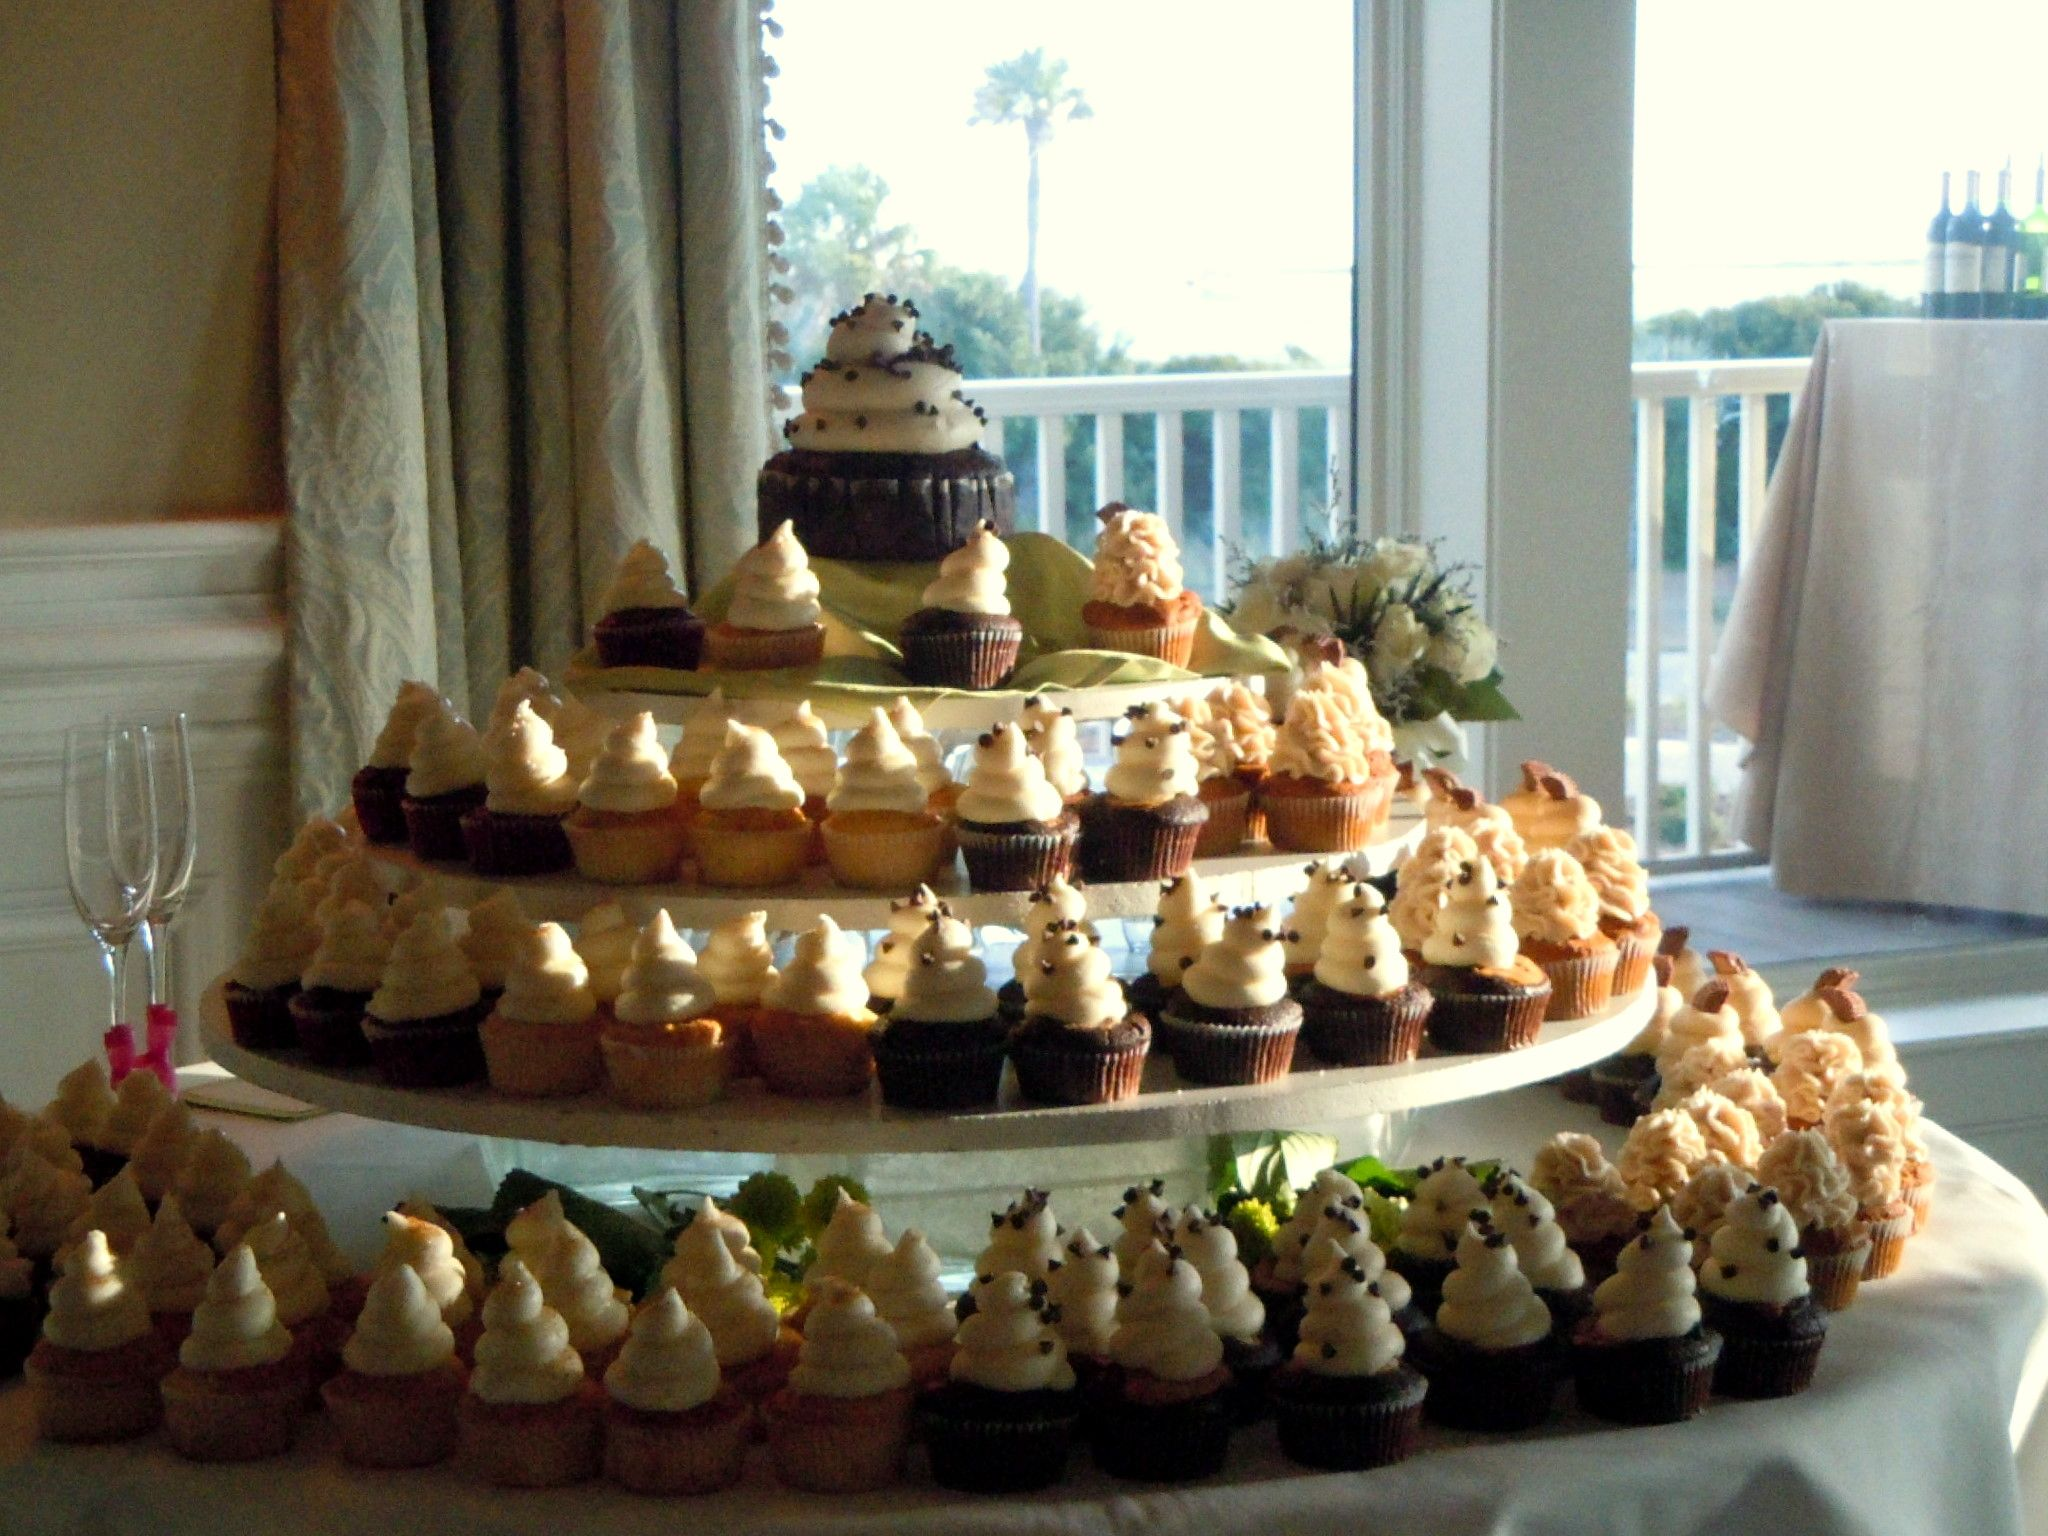 Fun cupcakes with many different flavors for the wedding